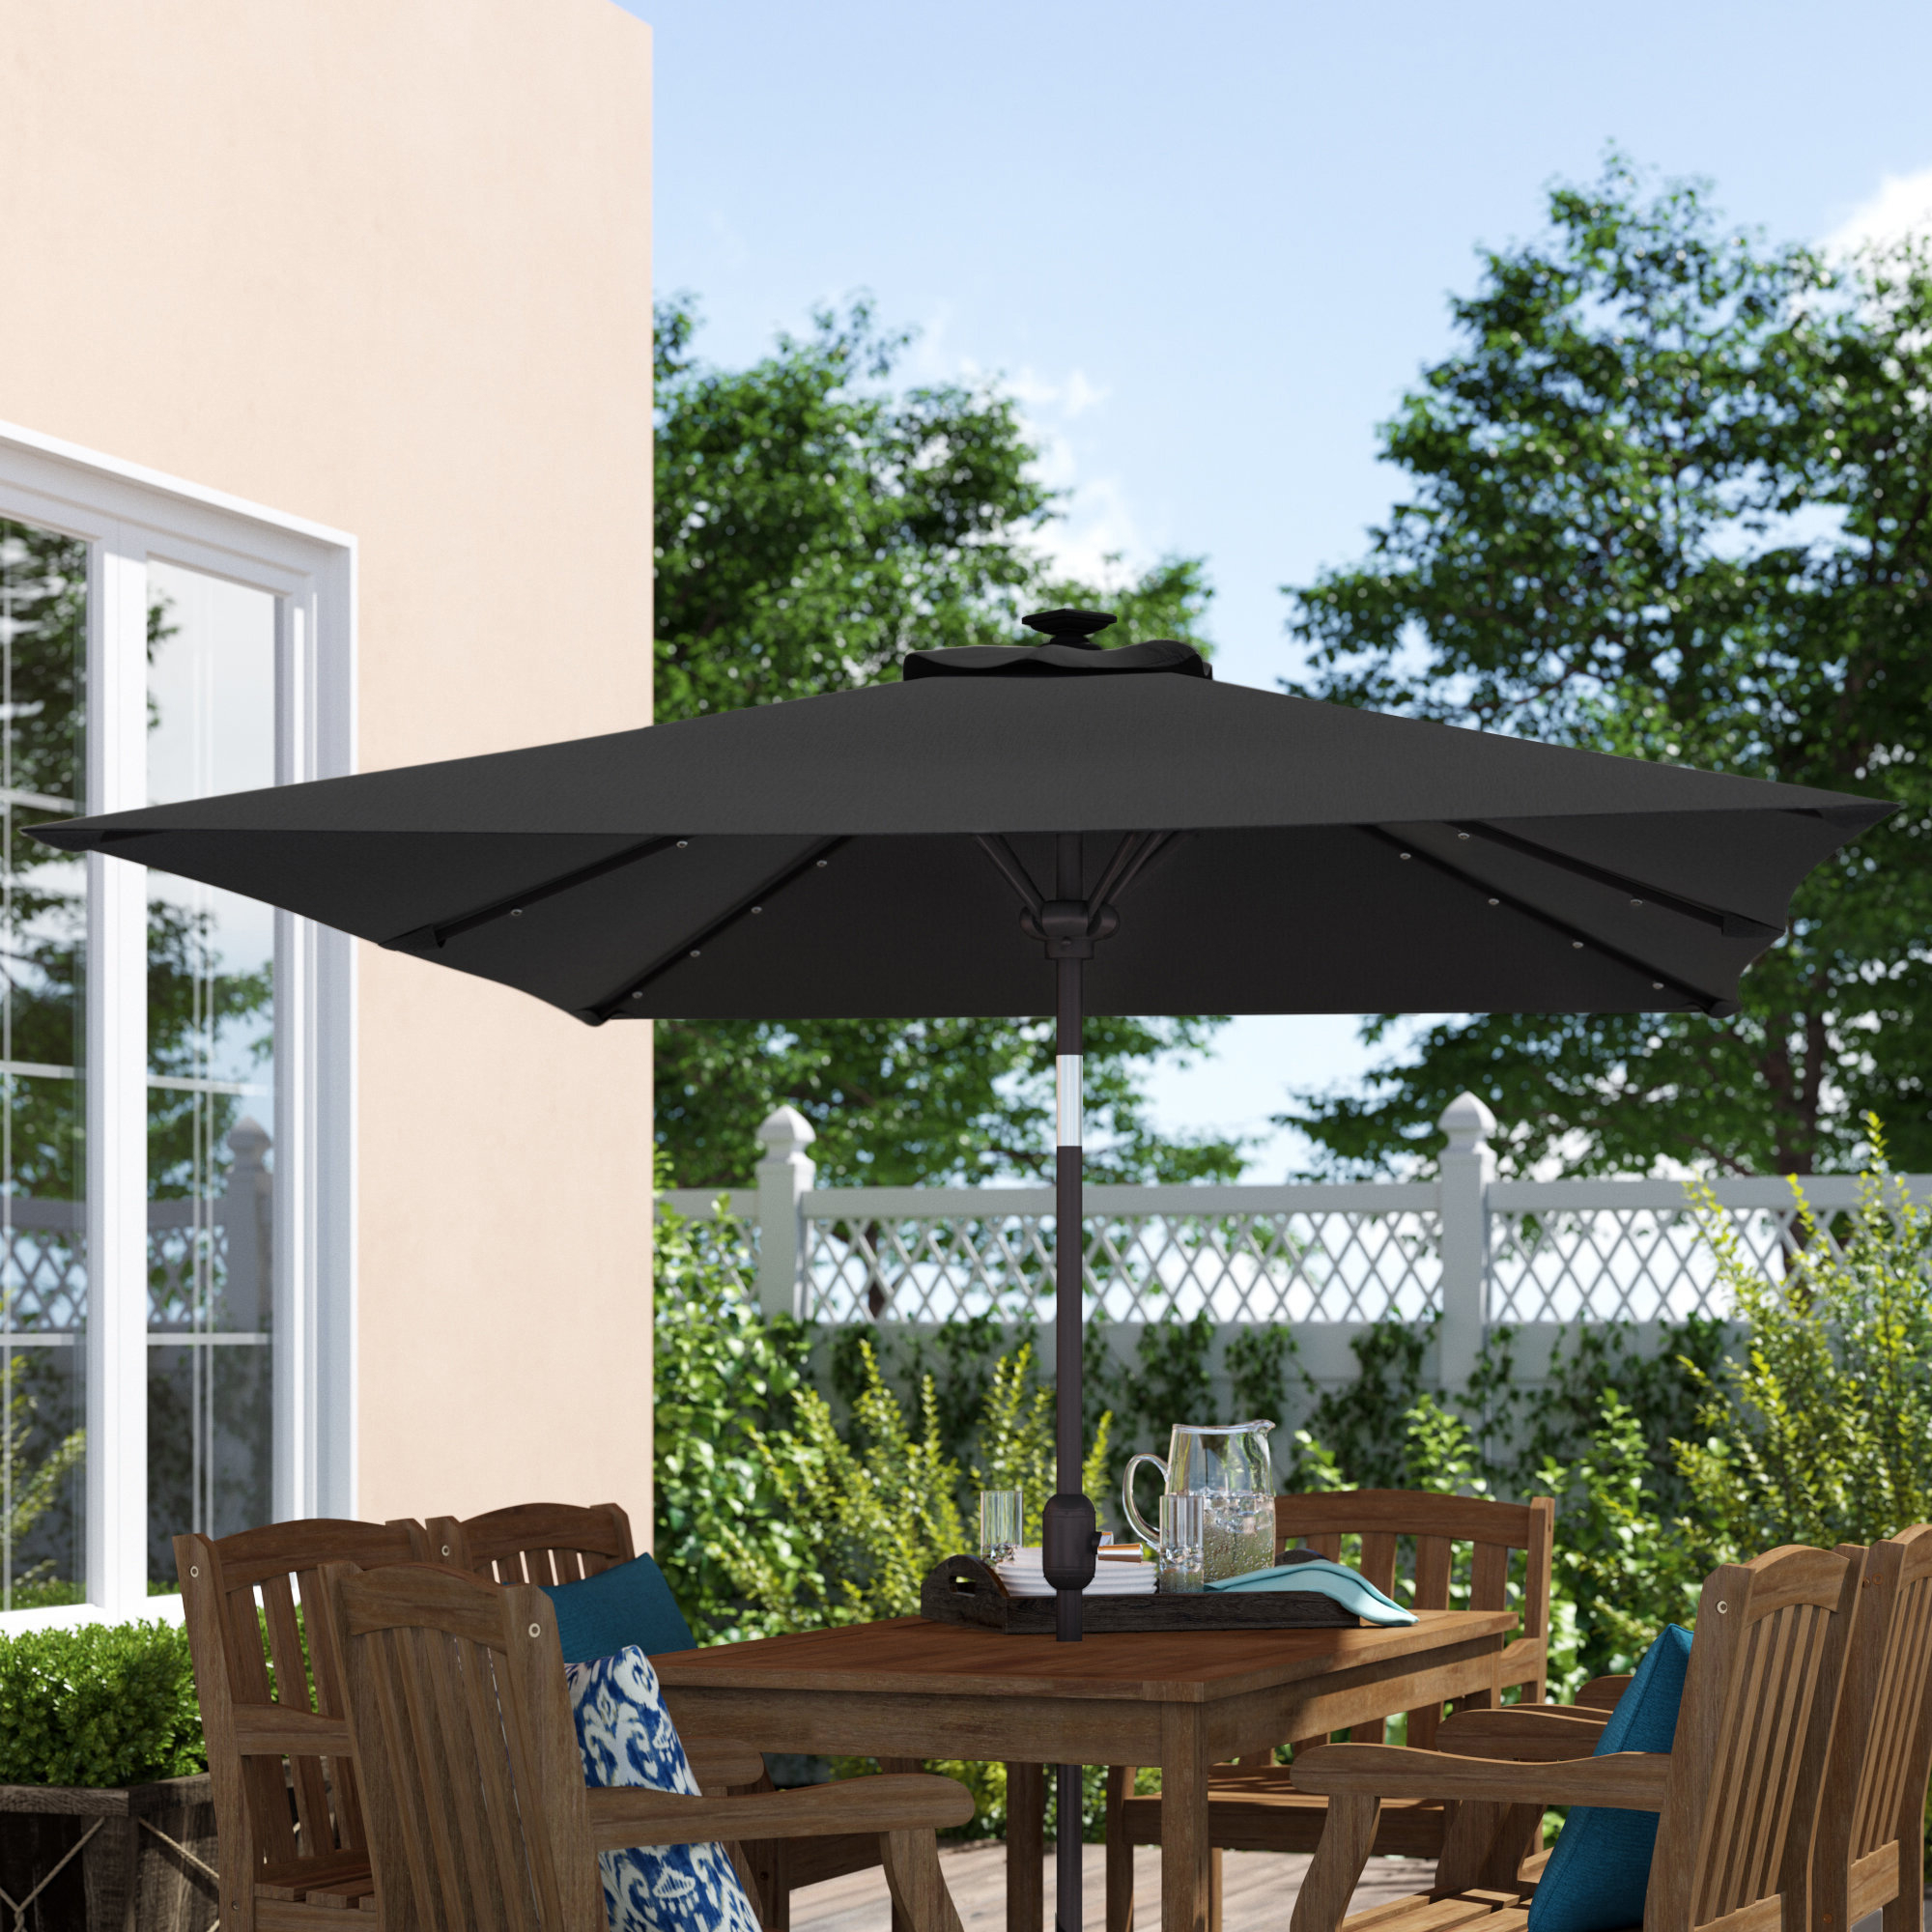 "Widely Used Eliana Solar Lighted Sunshade Tilt Crank 10' X 6'6"" Rectangular Market Umbrella Throughout Eastwood Market Umbrellas (View 11 of 20)"